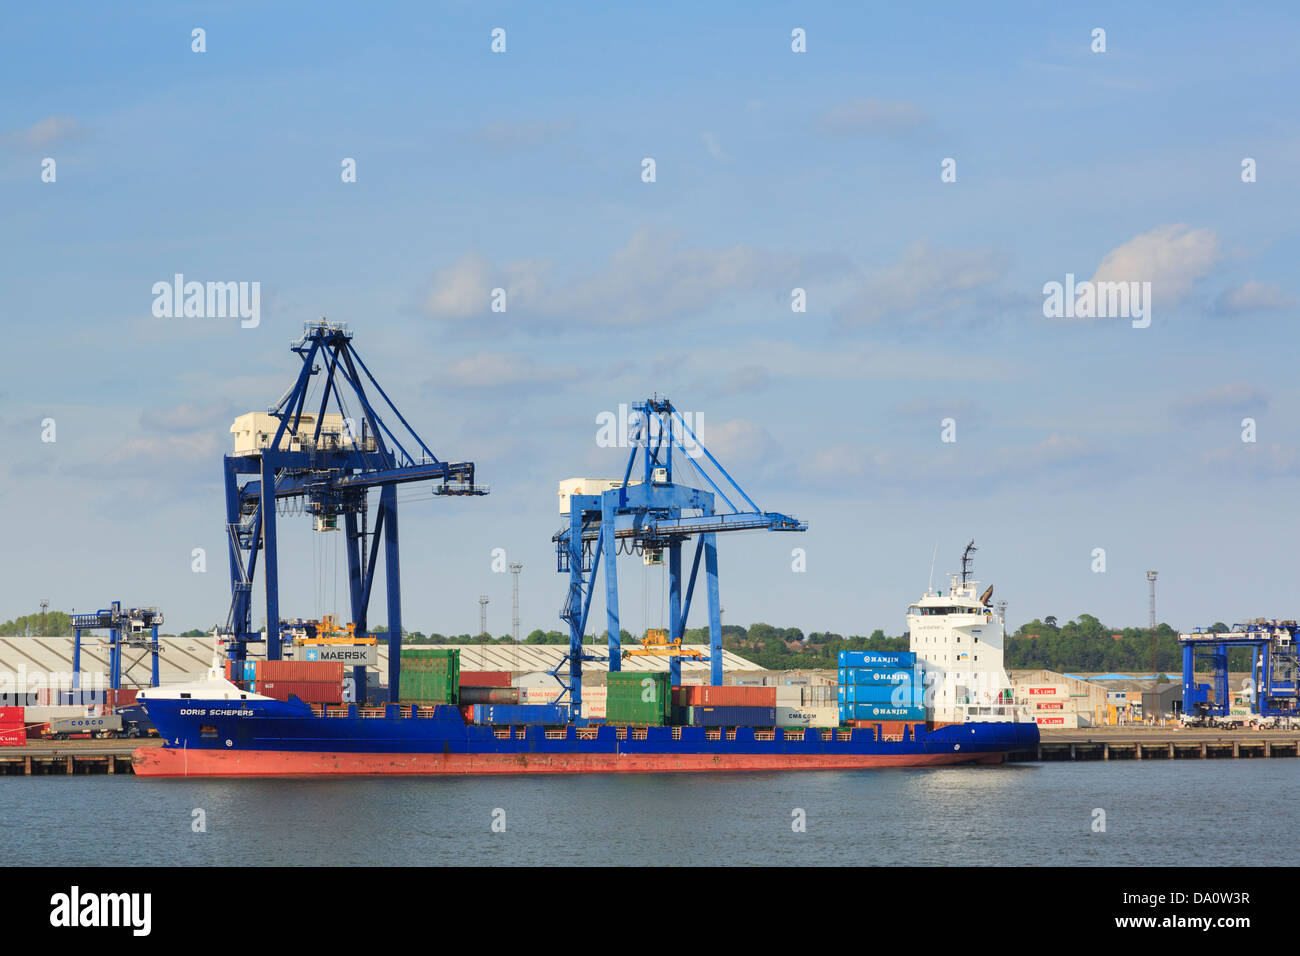 Gantry crane lifting containers on to a container ship for global trade docked in terminal in Port of Felixstowe, Suffolk, England, UK, Britain Stock Photo